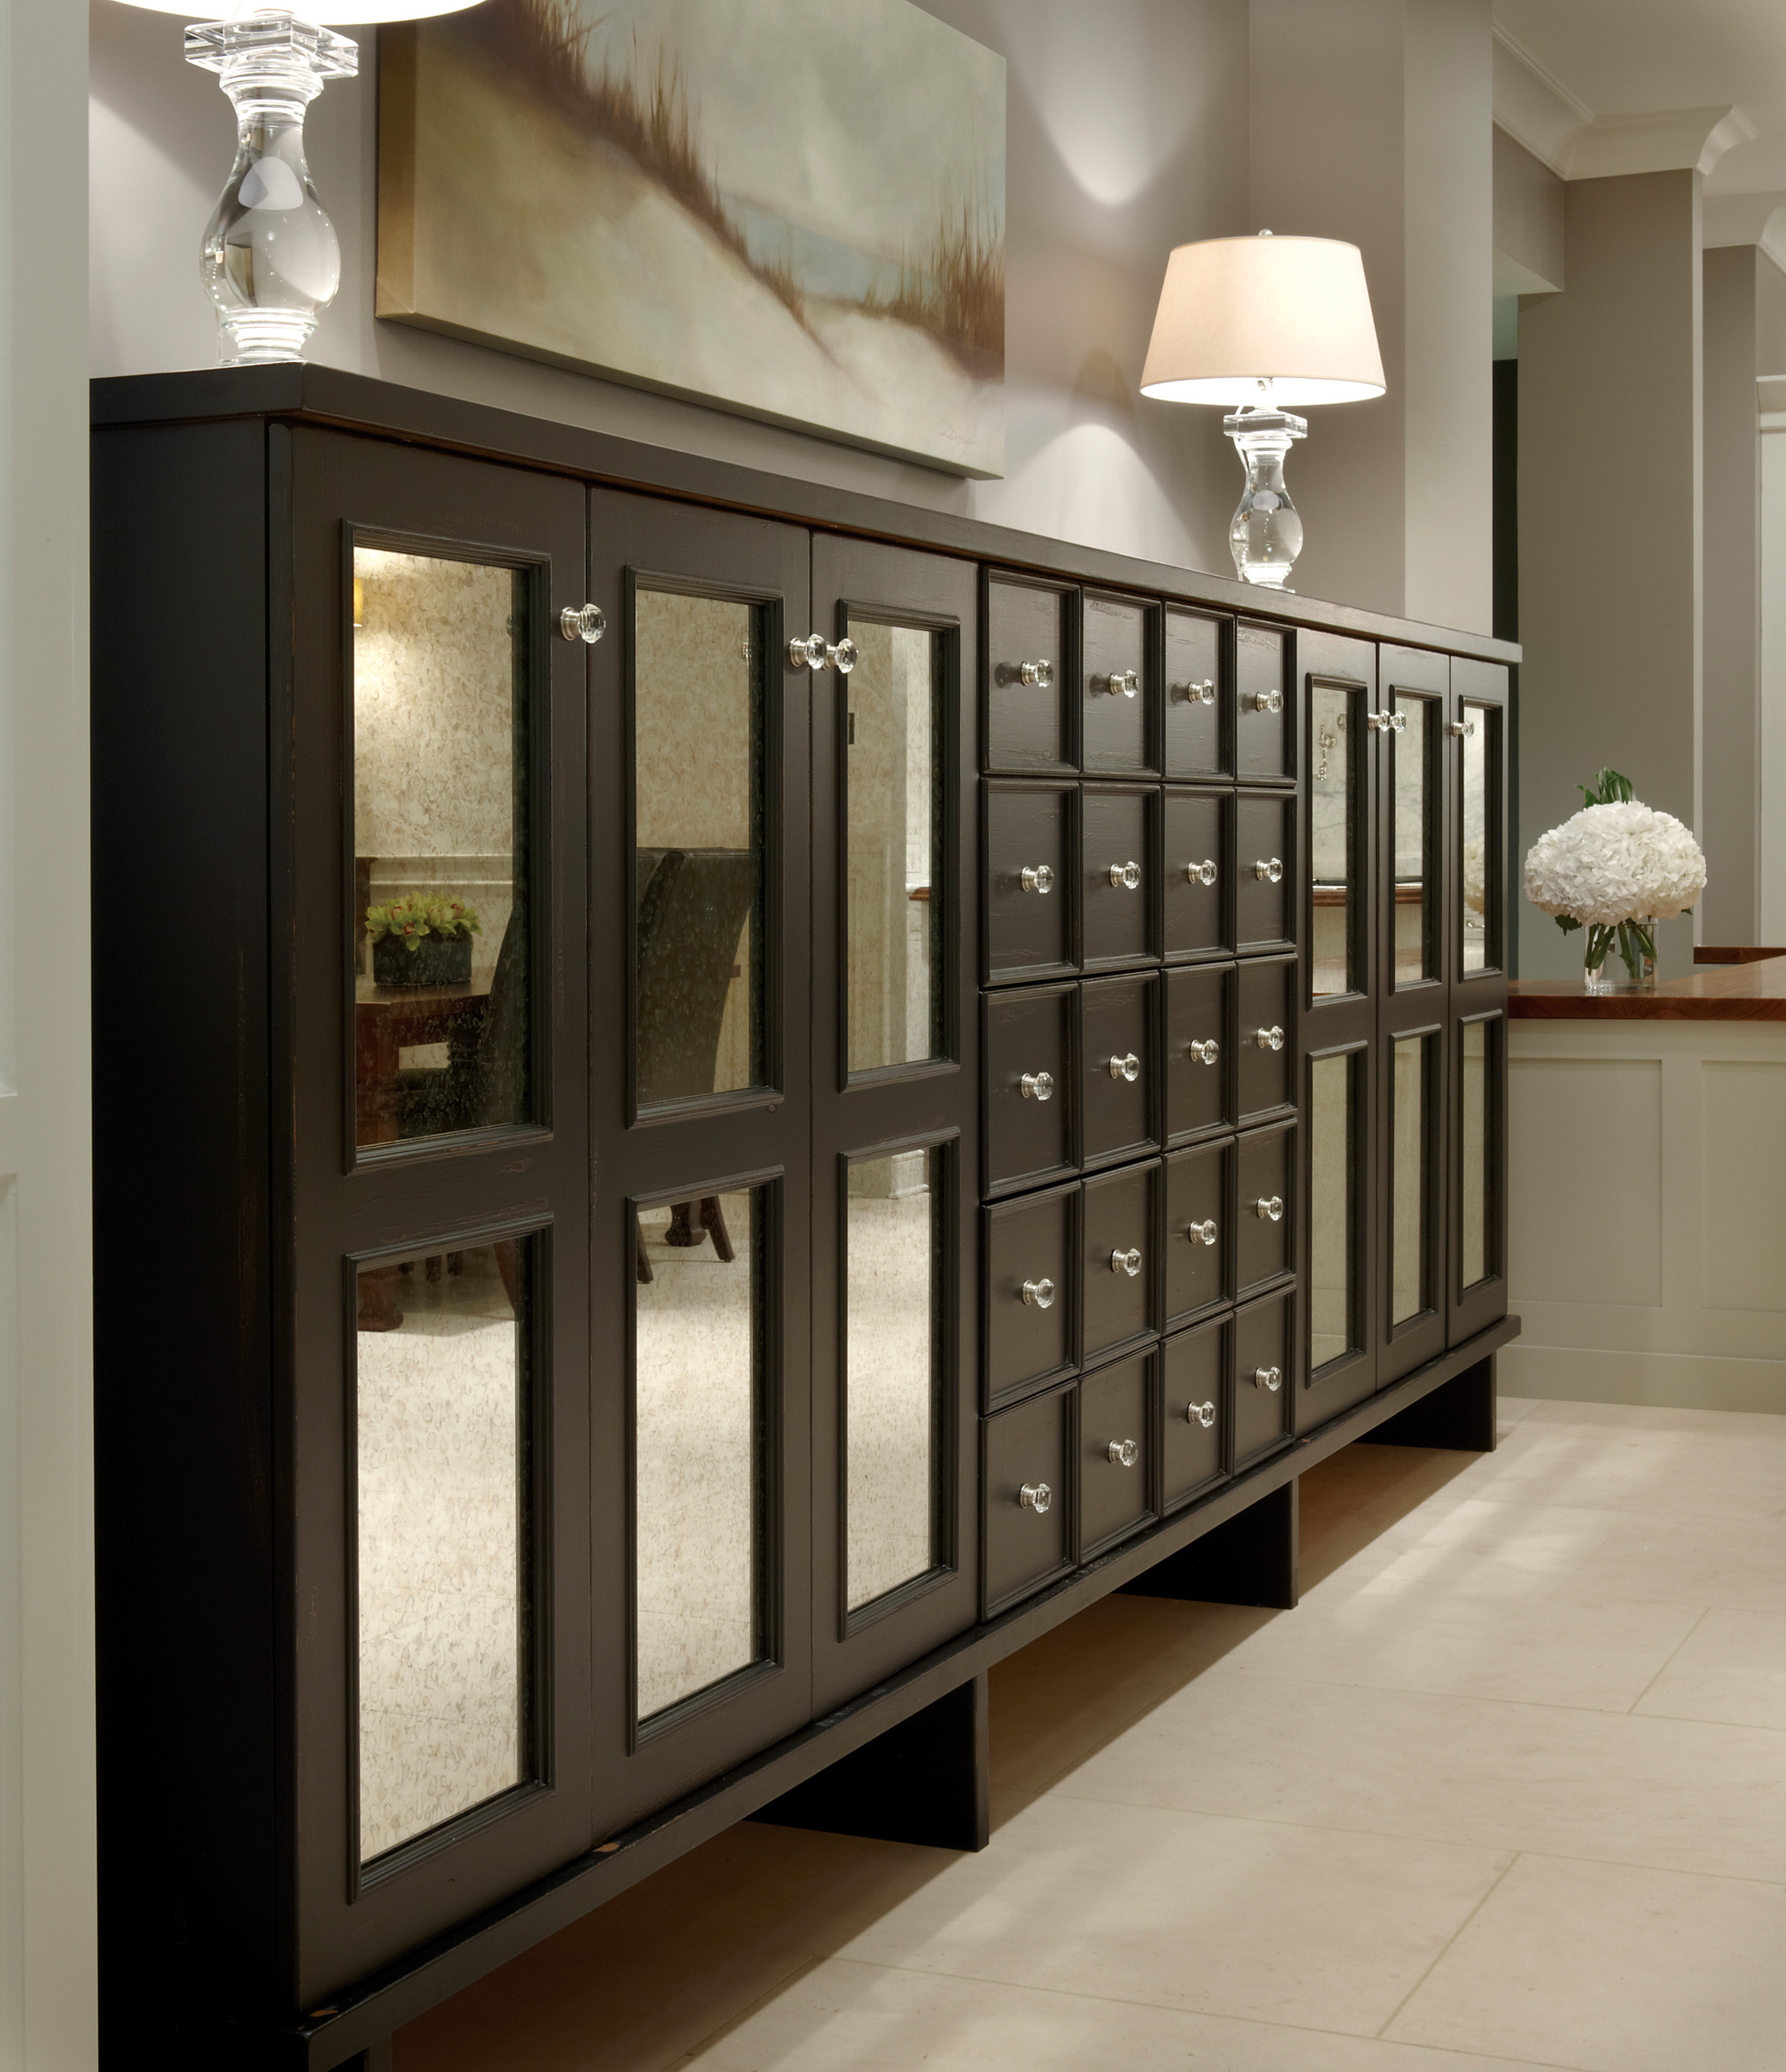 Contemporary bedroom cabinet plain fancy - Bedroom cabinets design ...